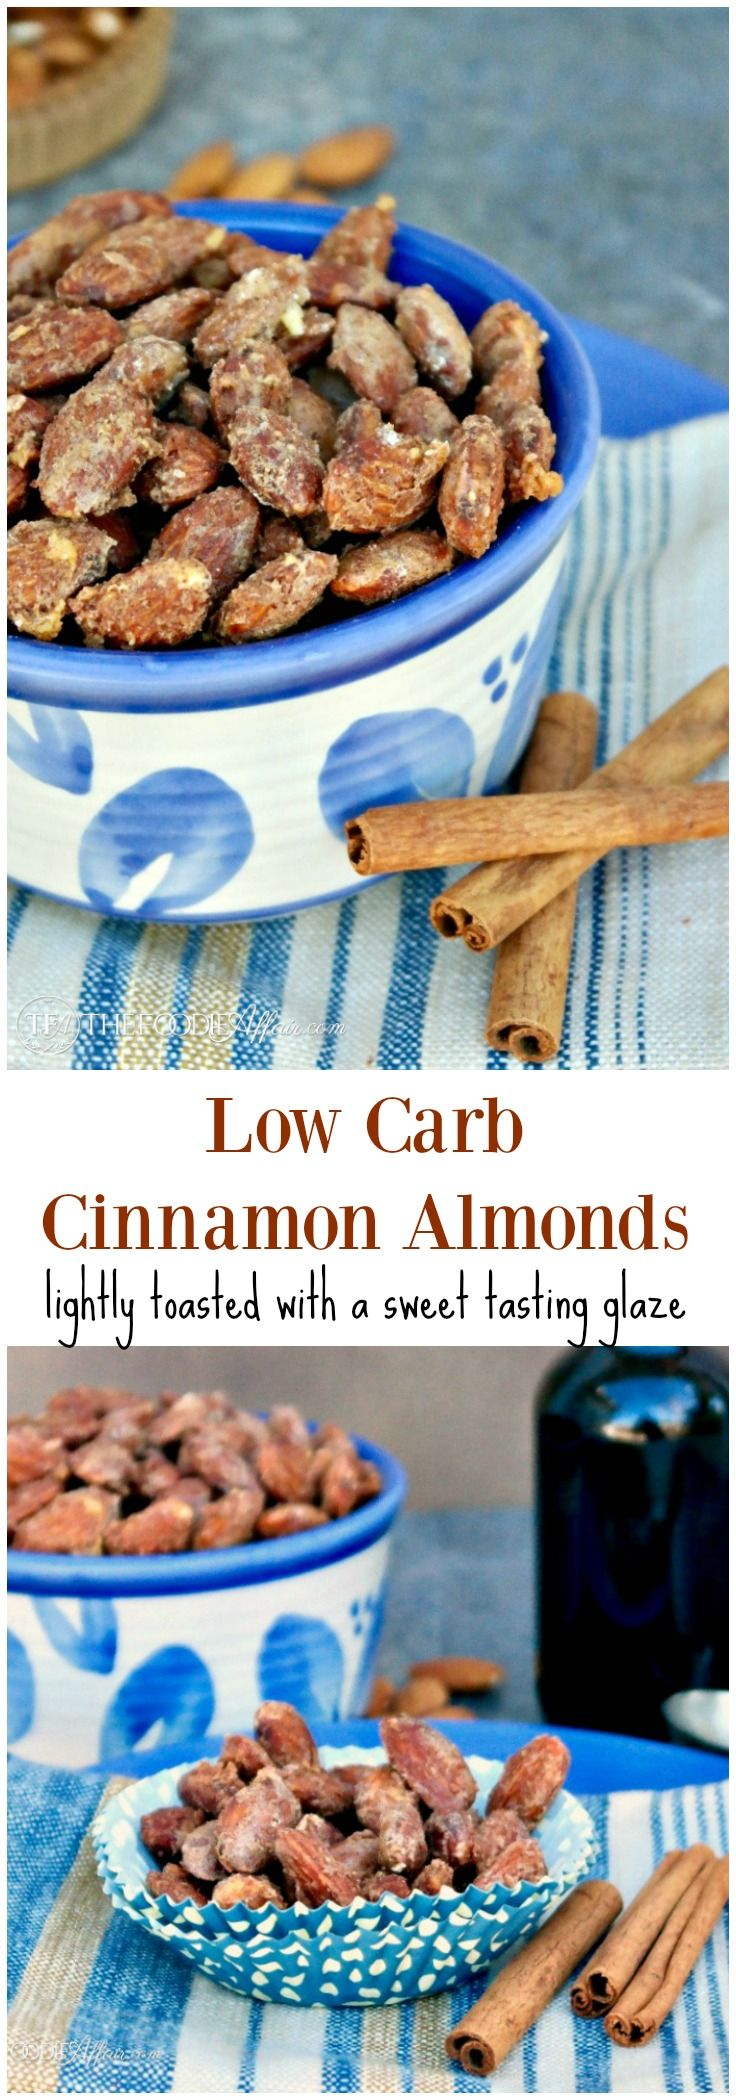 Low Carb Cinnamon Almonds lightly toasted with a sweet tasting glaze. This snack is a great afternoon pick-me-up or addition to a salad. #LowCarb #SugarFree #Almonds